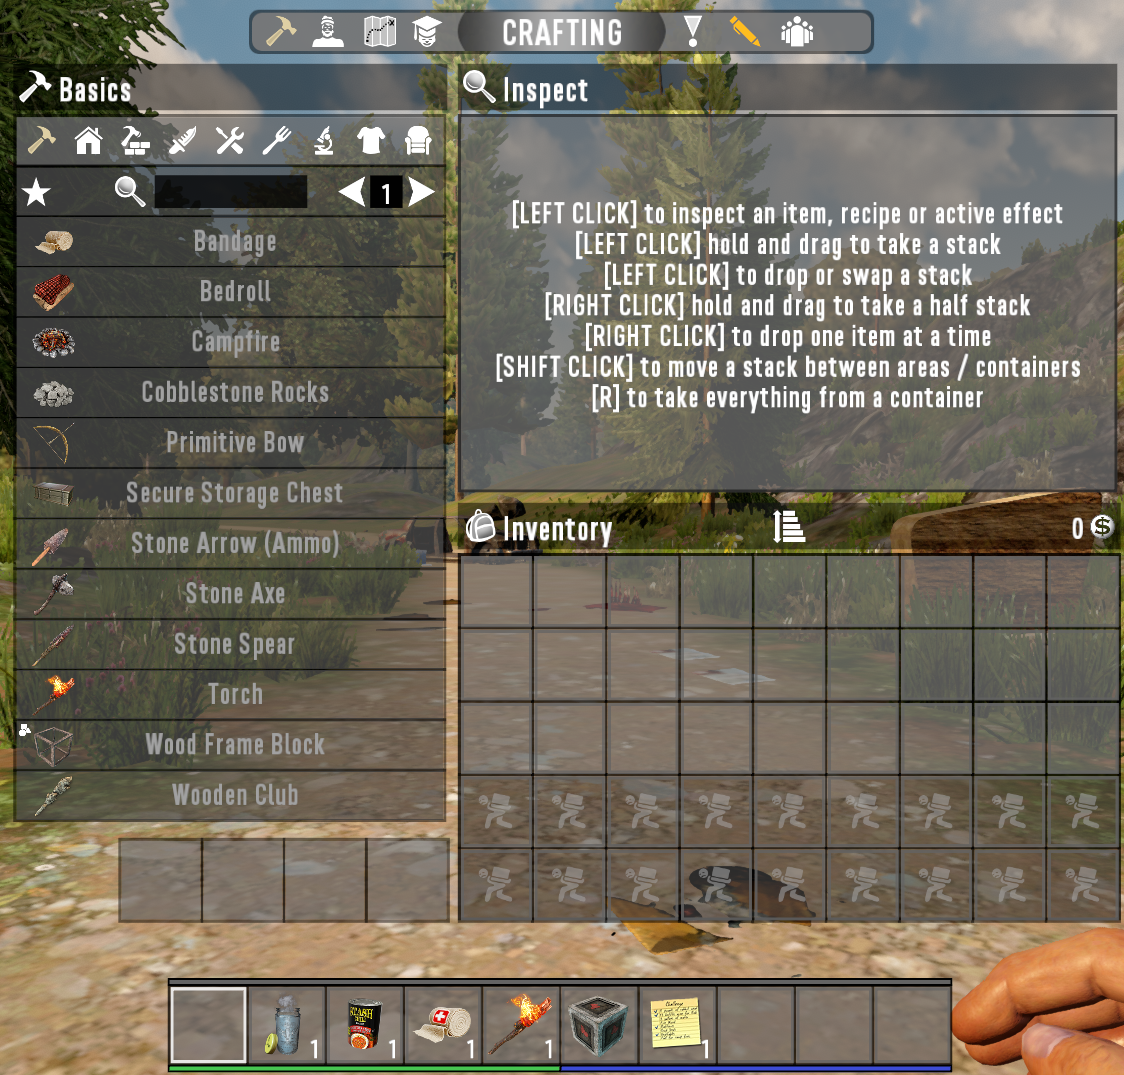 7 Days to Die Inventory Page: your basic inventory with your item UI on the left where you can look up everything you need